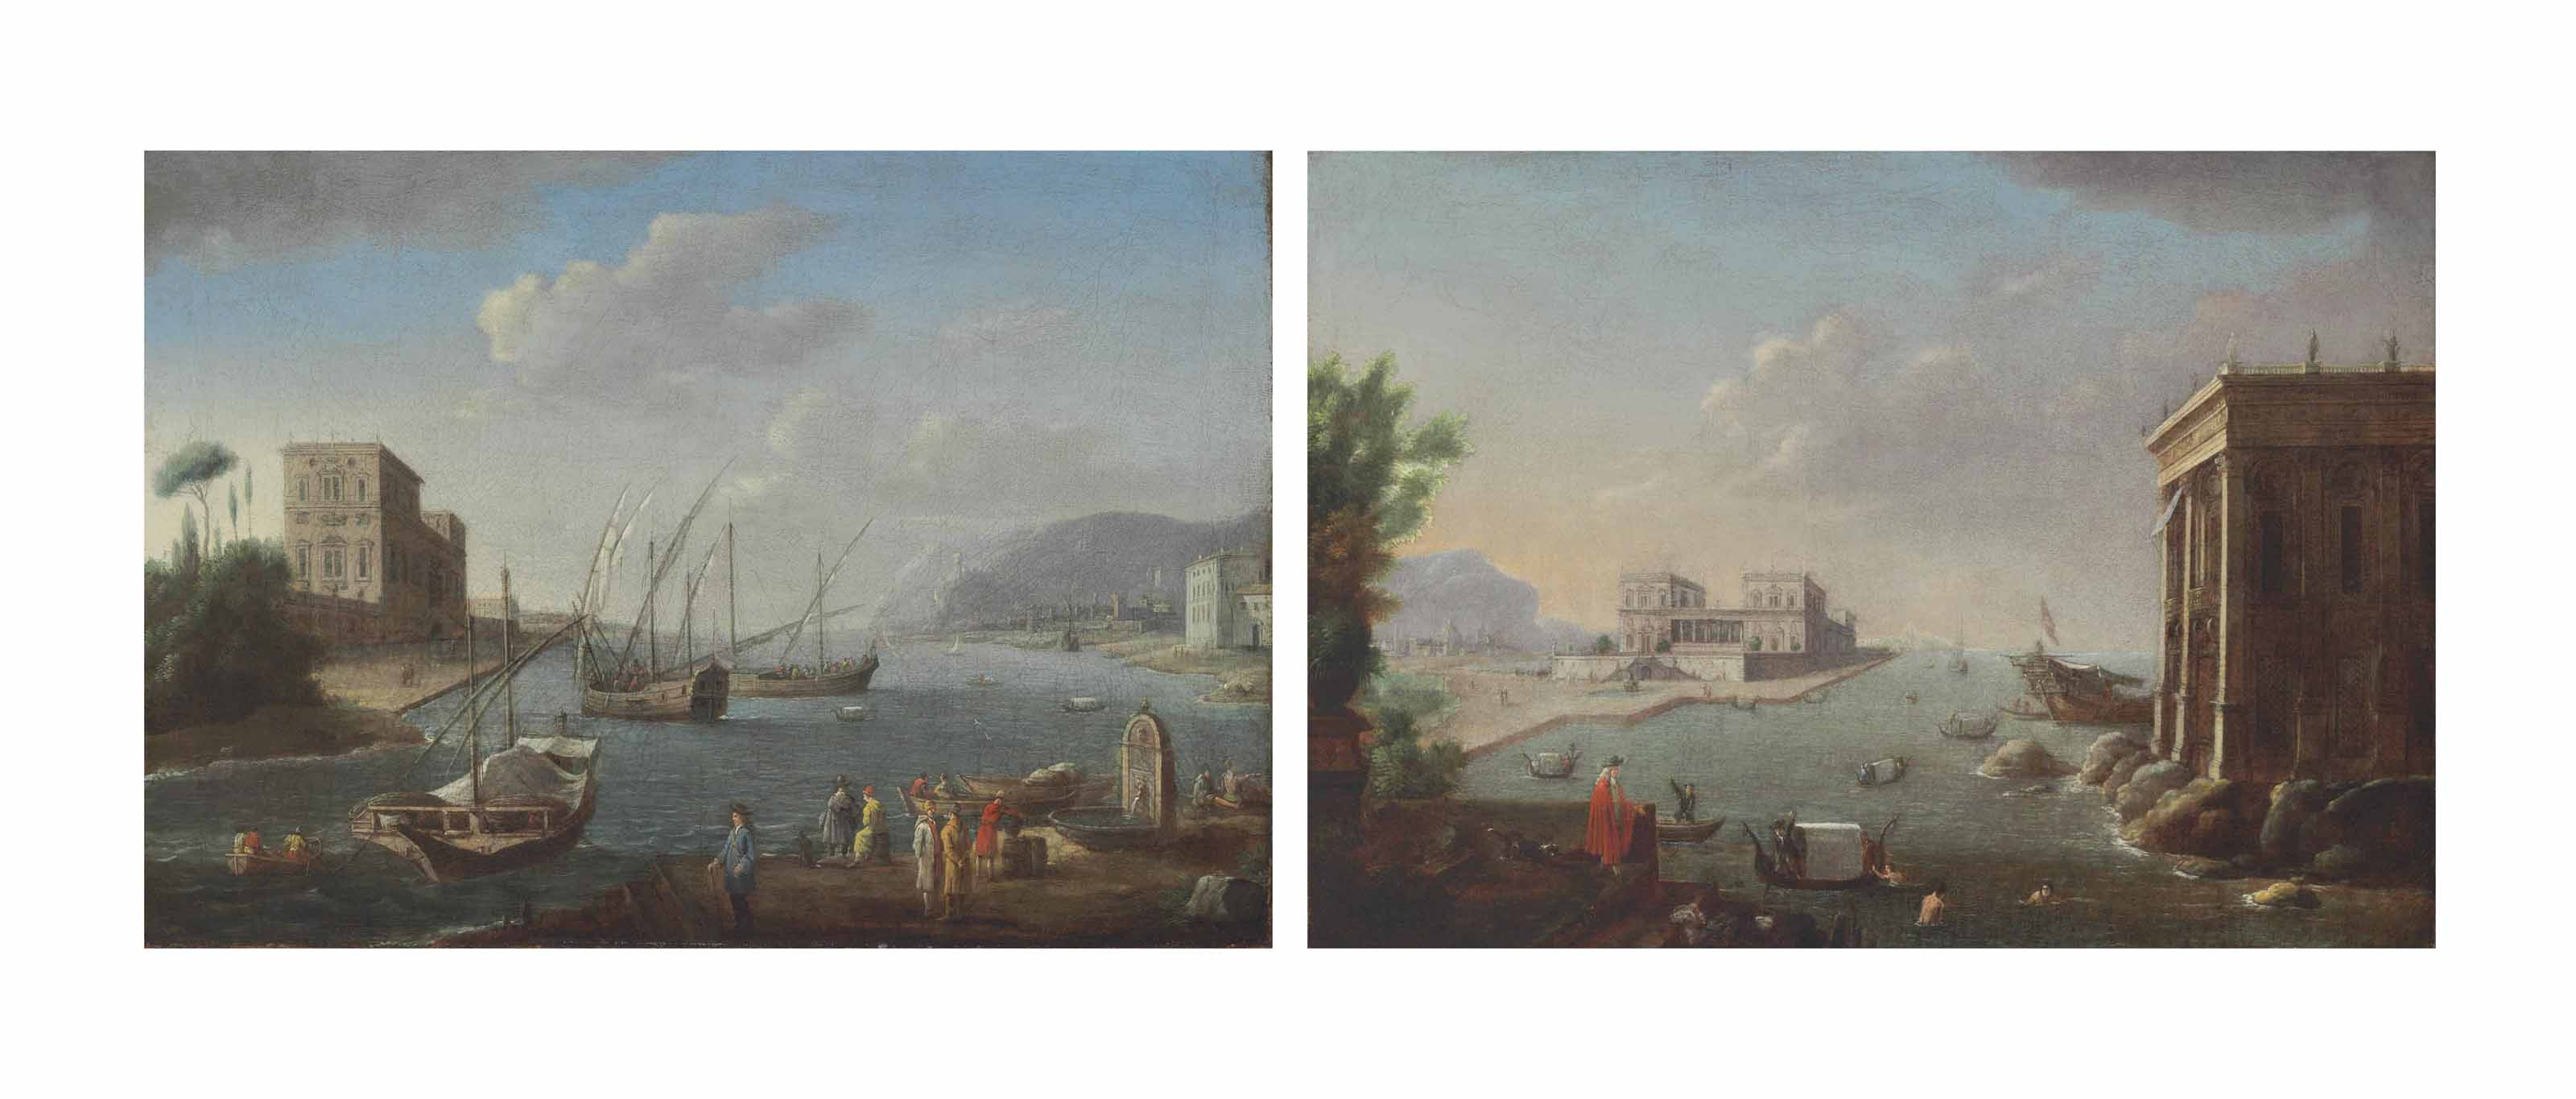 A Mediterranean harbor view with ships setting out; and A Mediterranean harbor view with swimmers and gondoliers